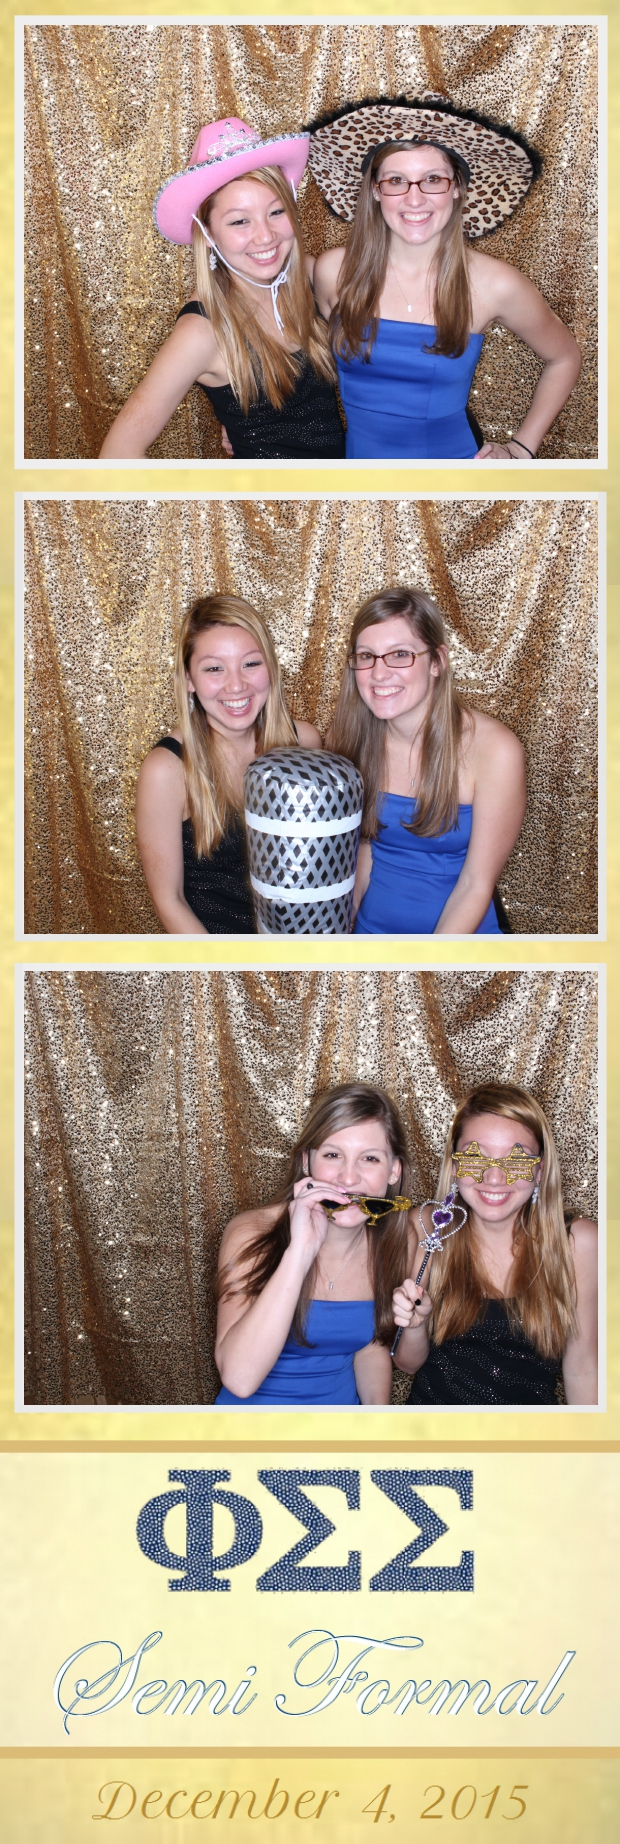 Guest House Events Photo Booth Phi Sigma Sigma Semi Formal (81).jpg